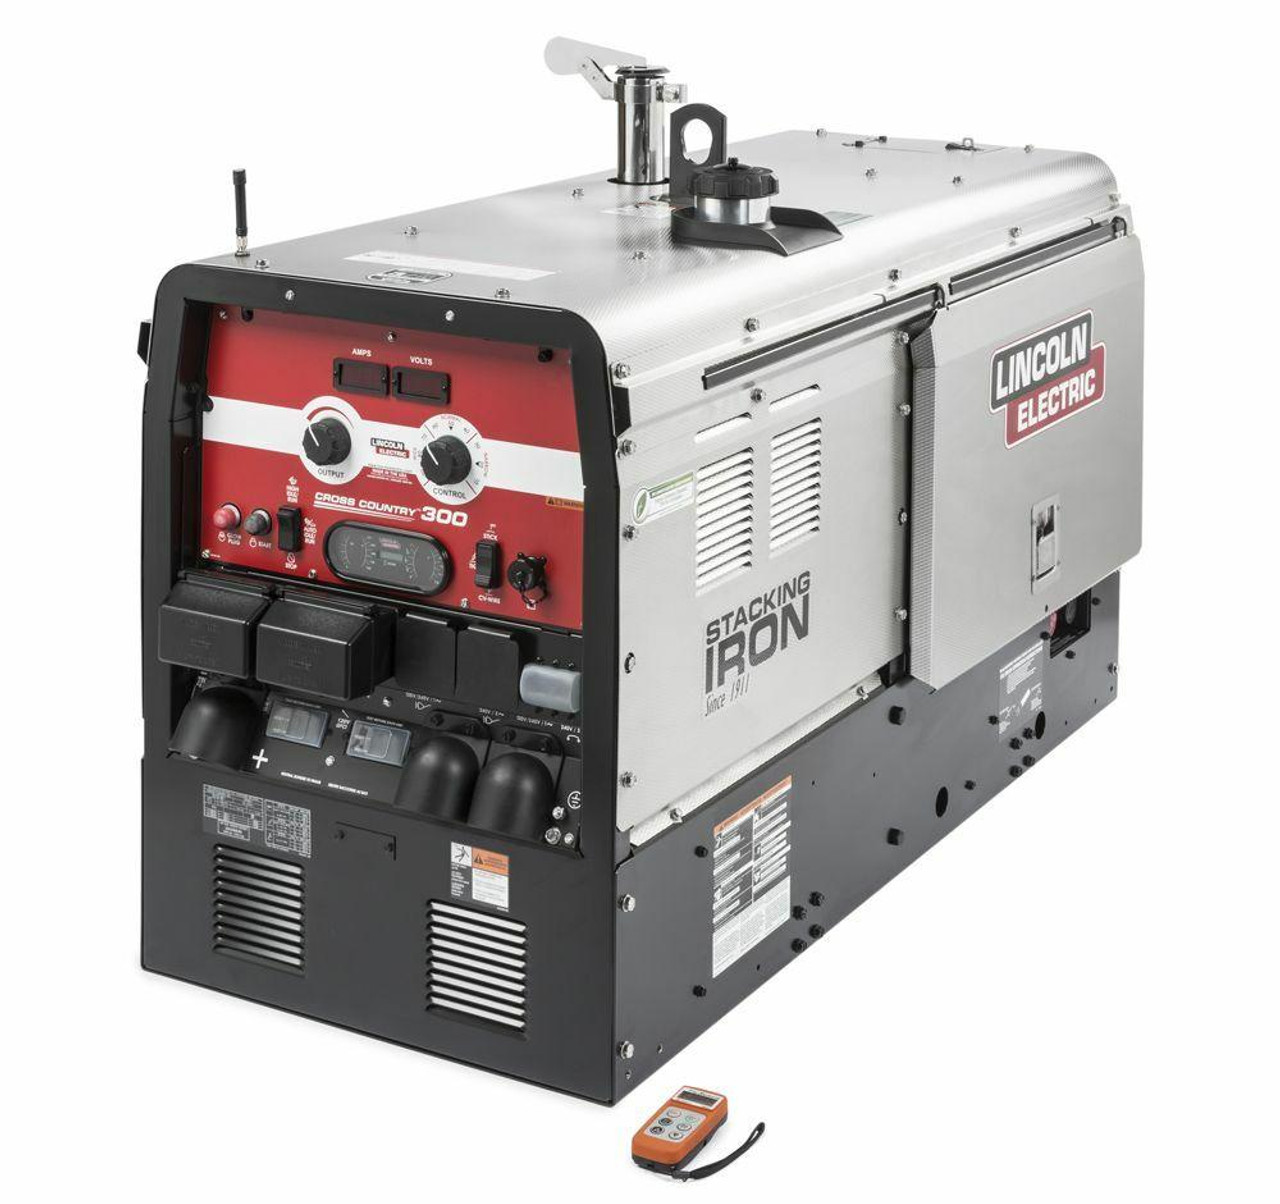 Lincoln Electric Lincoln Electric Cross Country 300 Engine Drive Welder KUBOTA SS w/ Wireless Remote Control - K4166-3